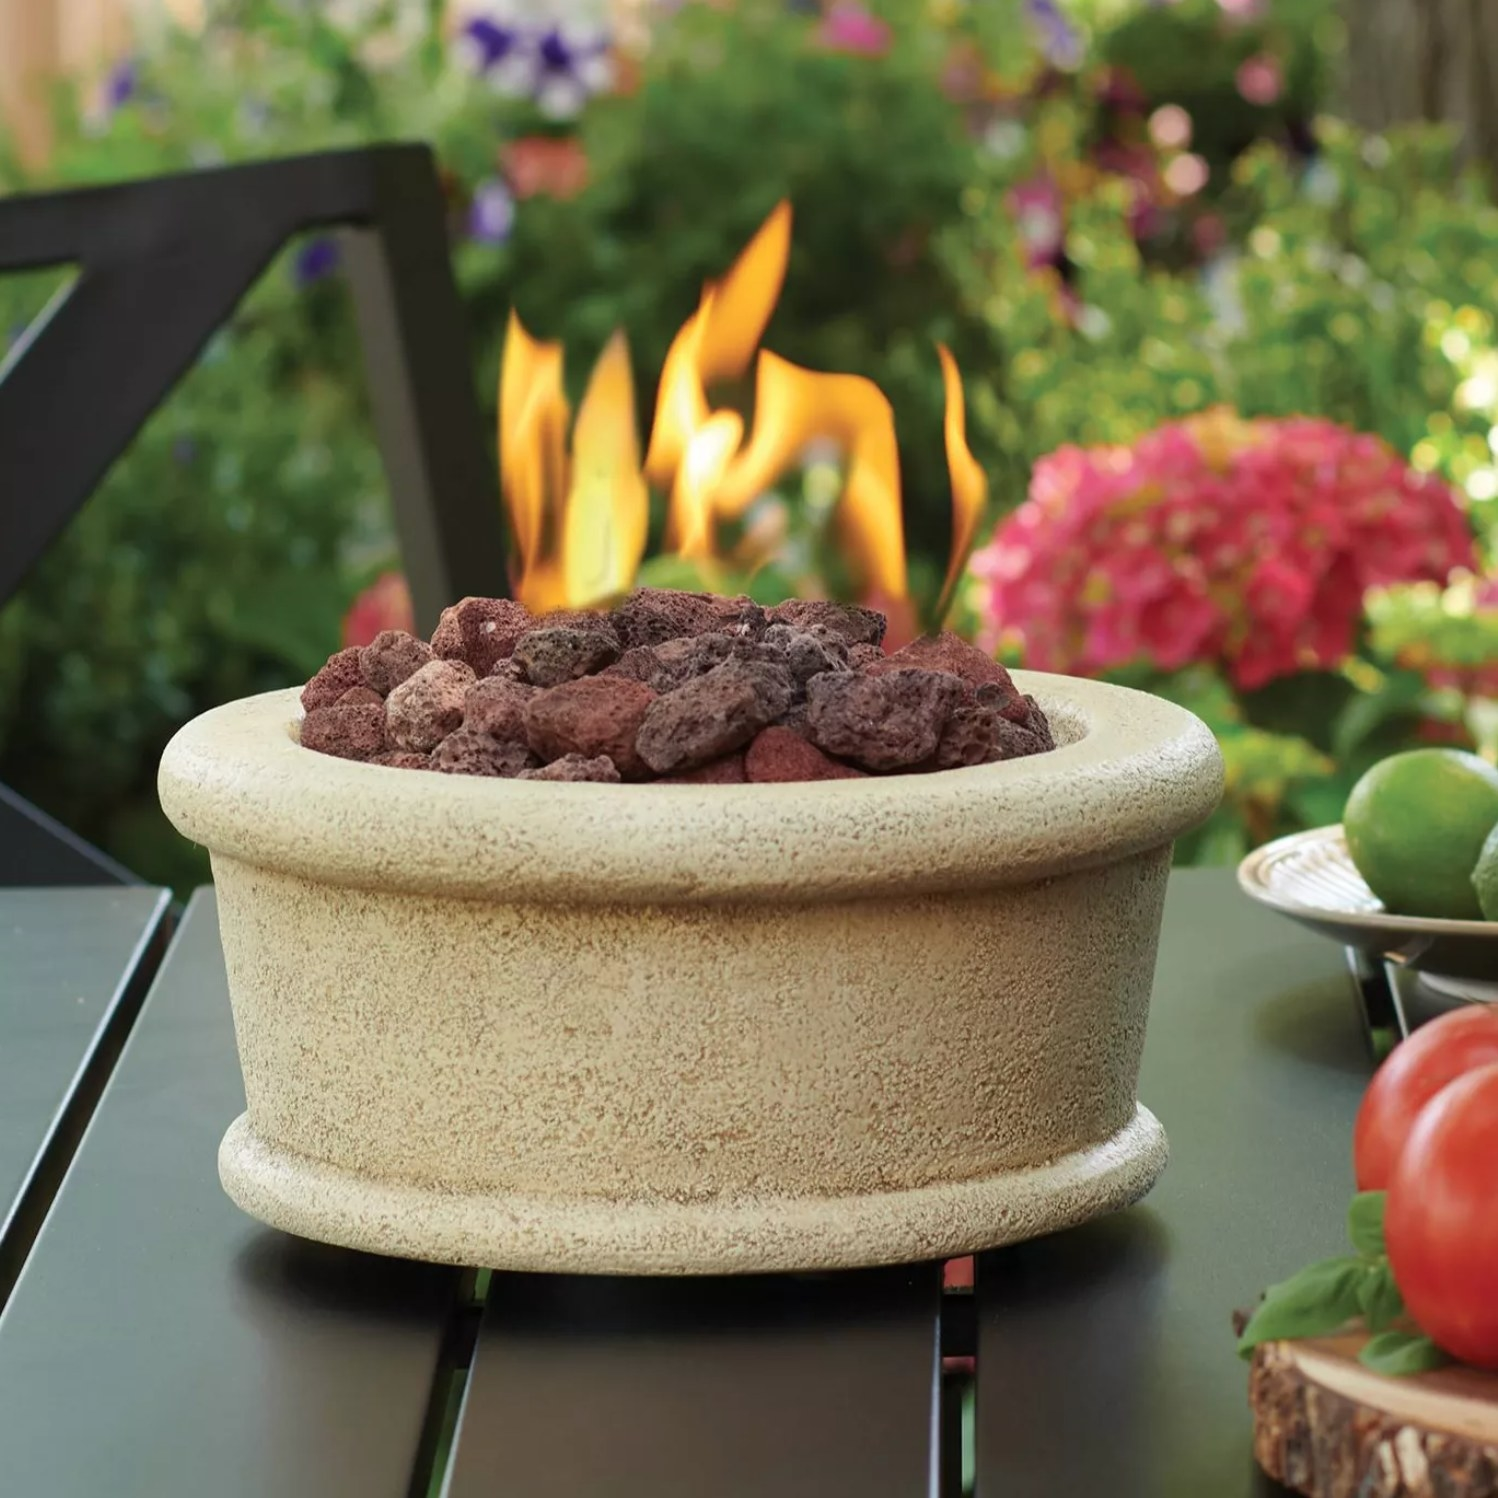 the small fire pit on an outside table